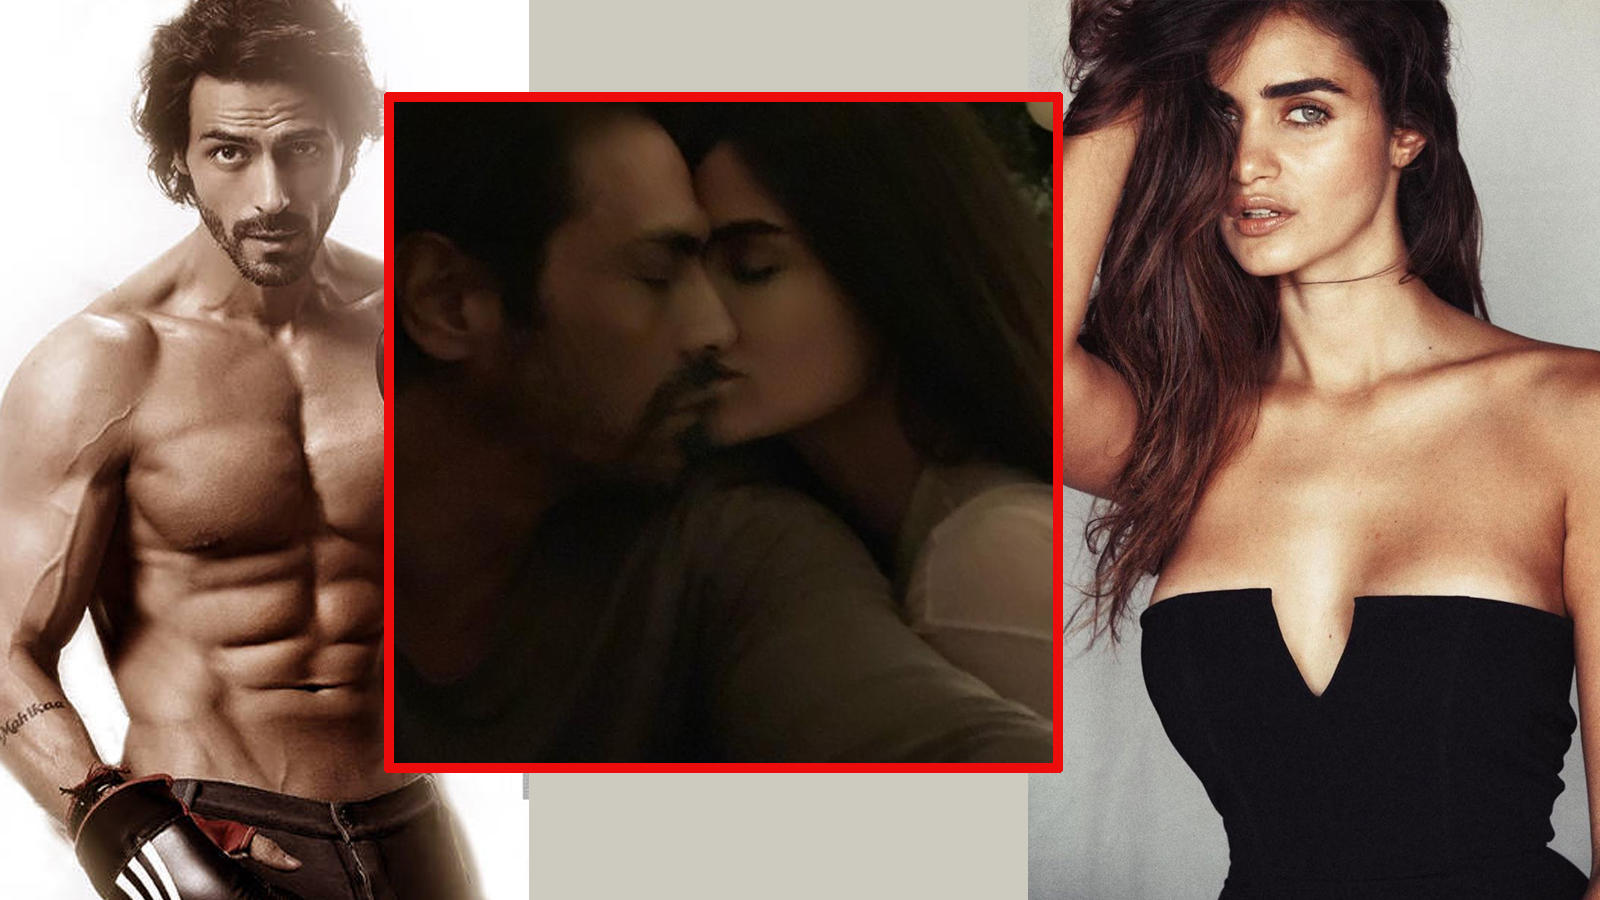 Arjun Rampal, girlfriend Gabriella Demetriades get cosy in latest photograph